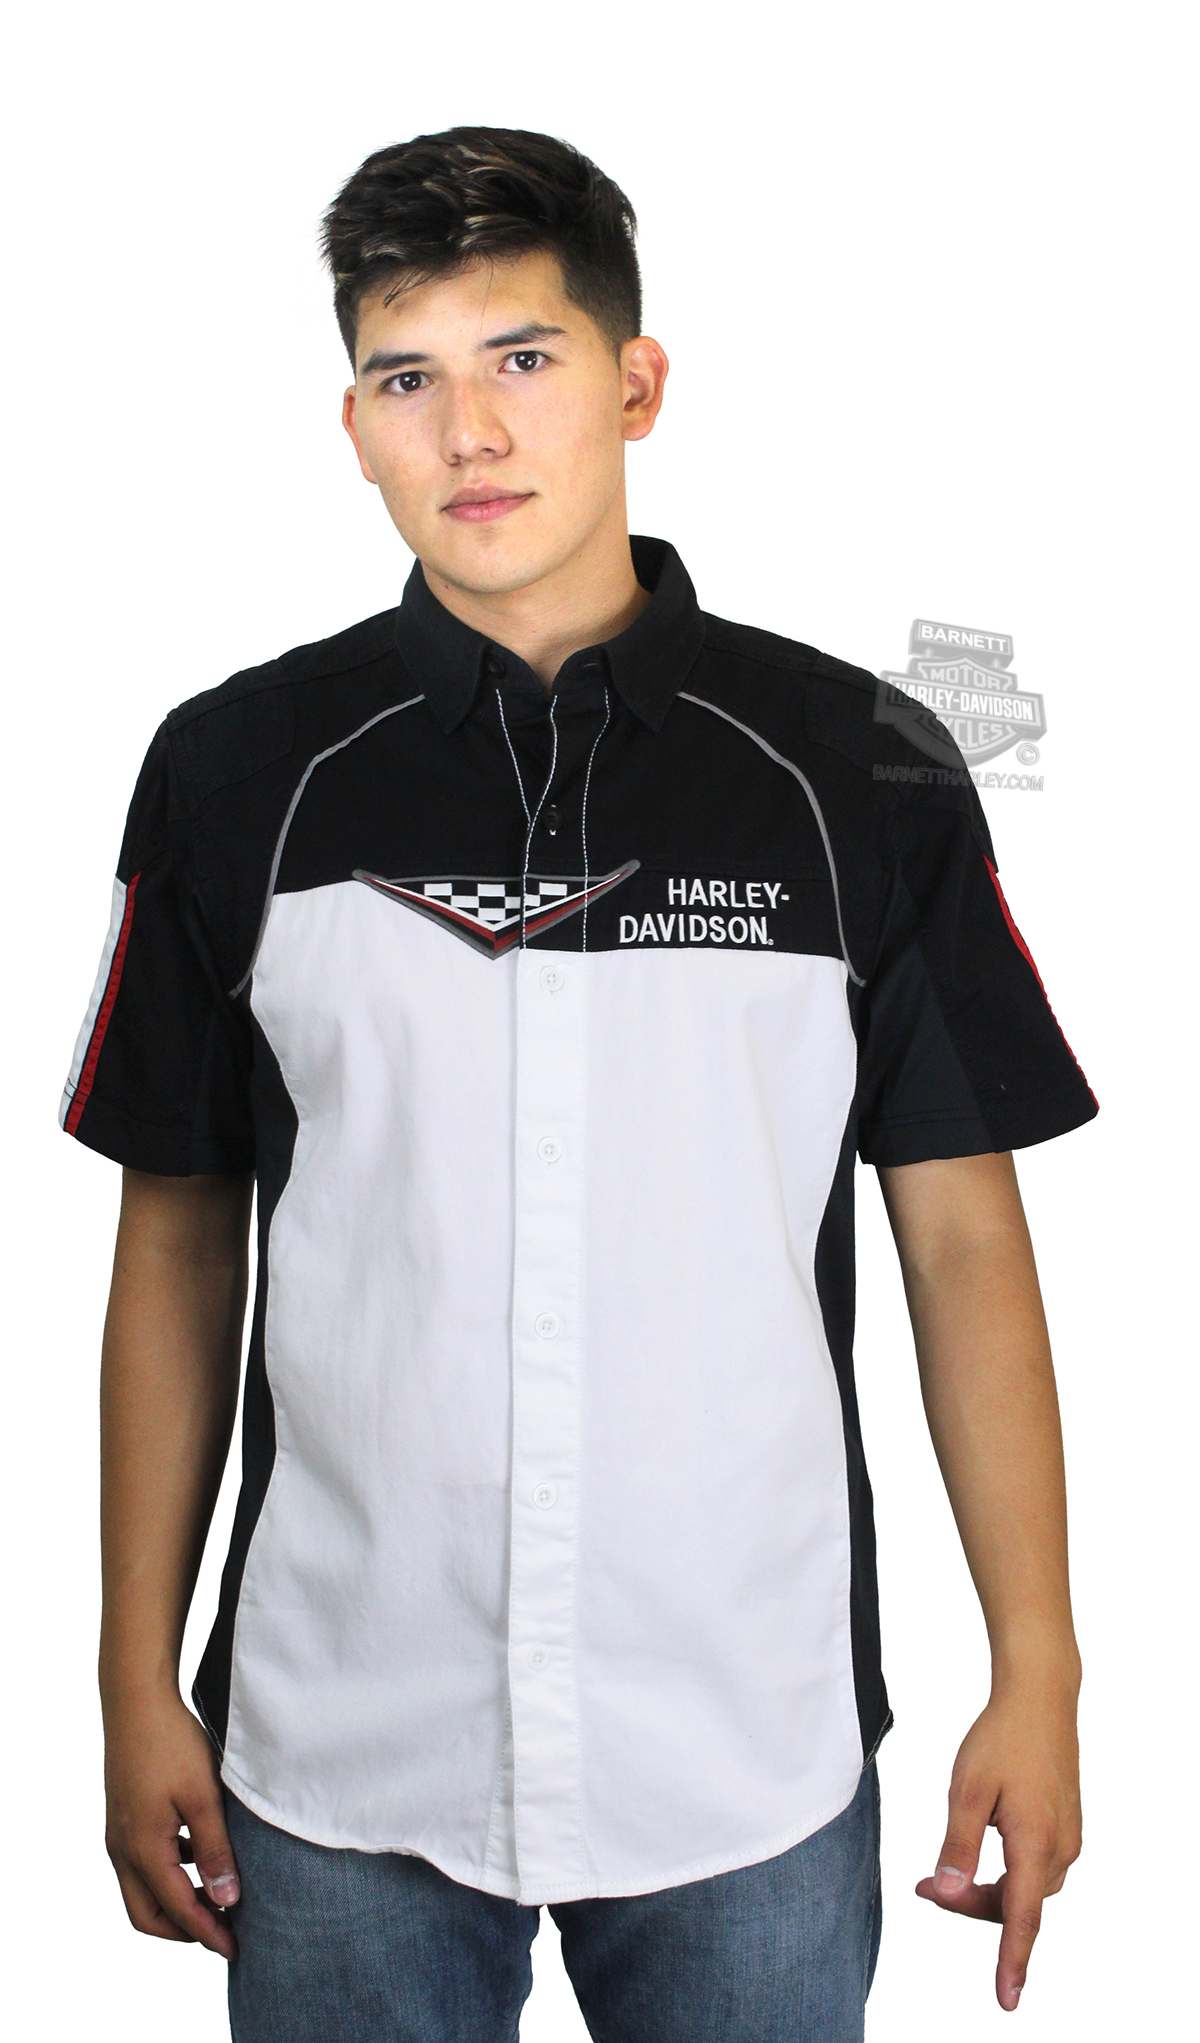 Harley Davidson 174 Mens Performance Vented Race Flag White